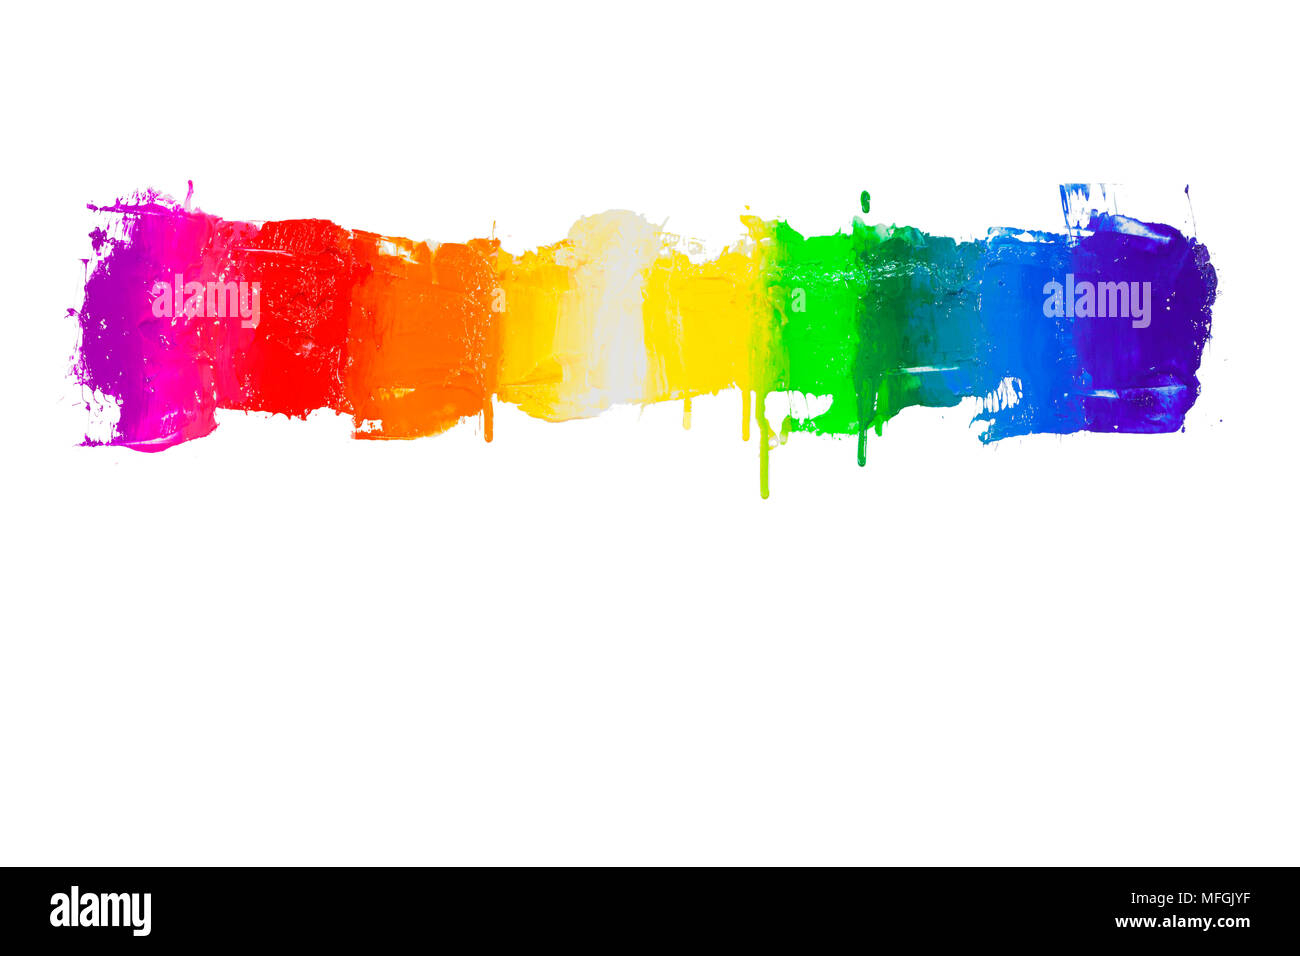 rainbow colors of paint dripping with clipping path - Stock Image